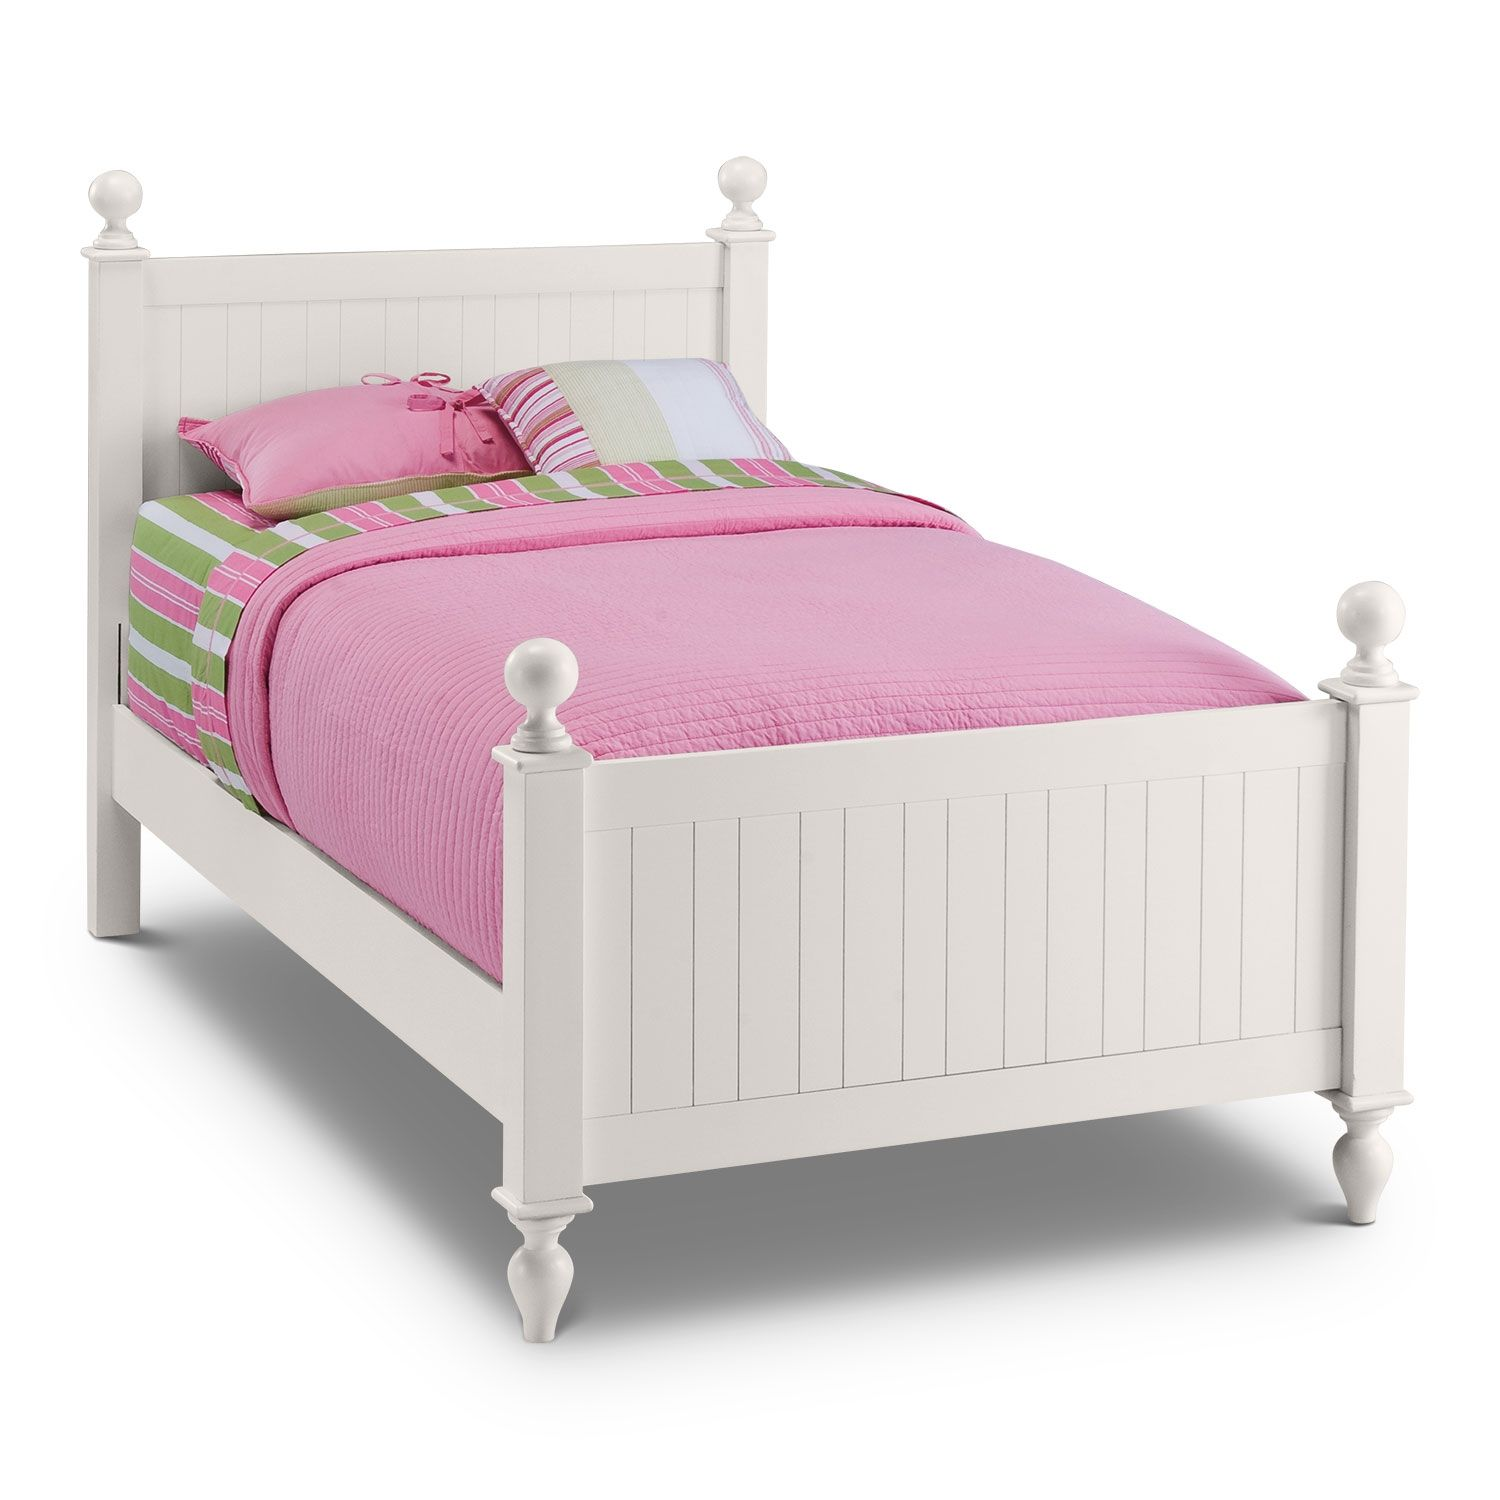 kids furniture - colorworks twin bed - white | the clubhouse